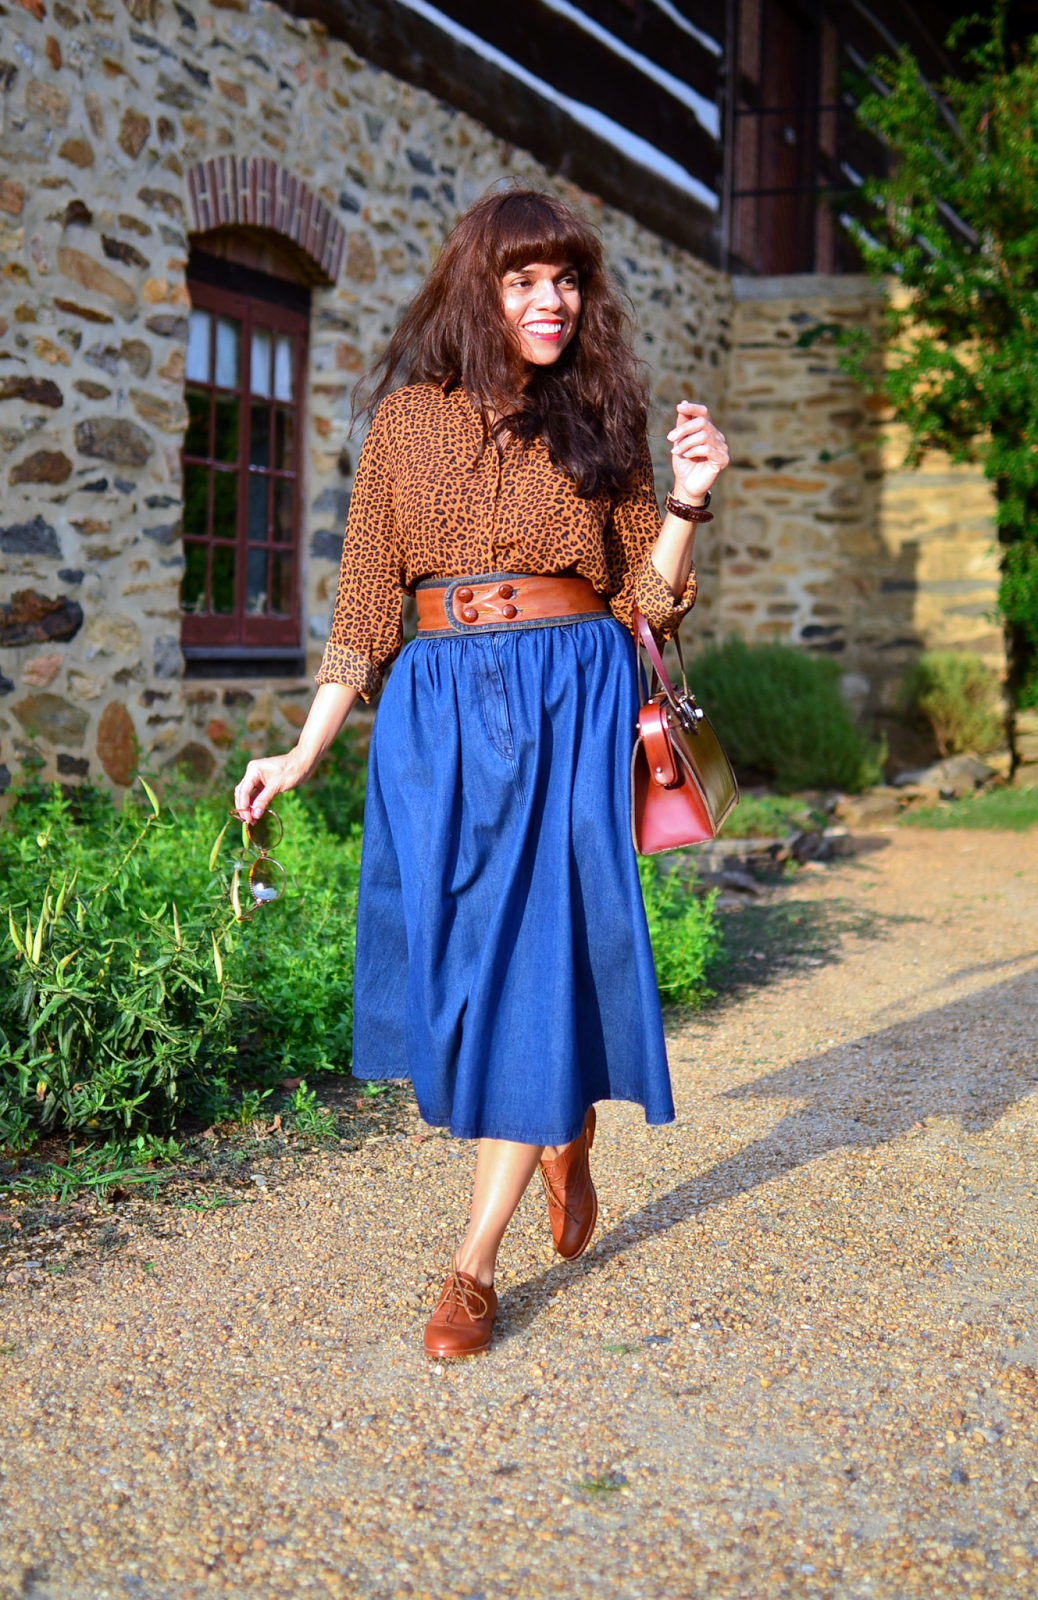 Outfit with flats and long skirt